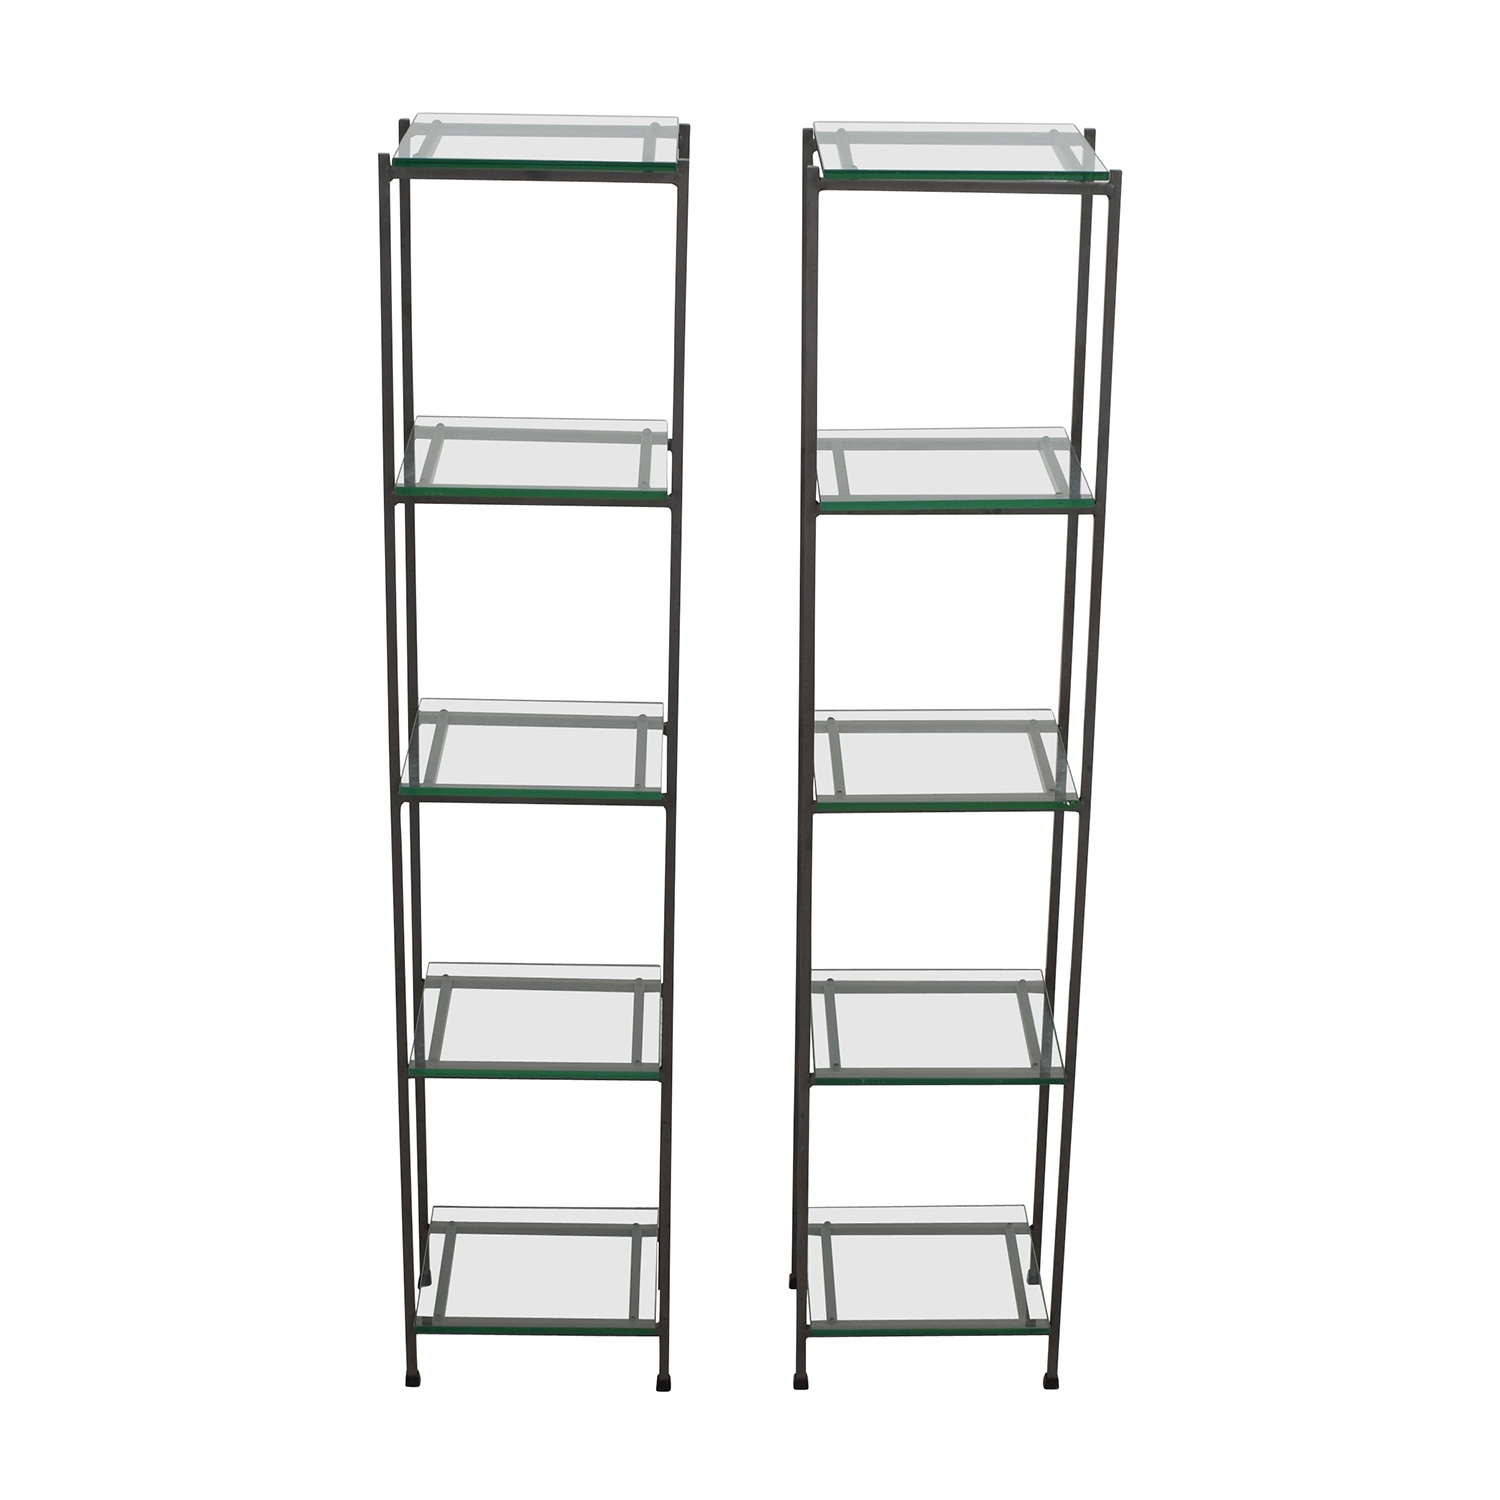 Crate & Barrel Crate & Barrel Glass Bookcases used